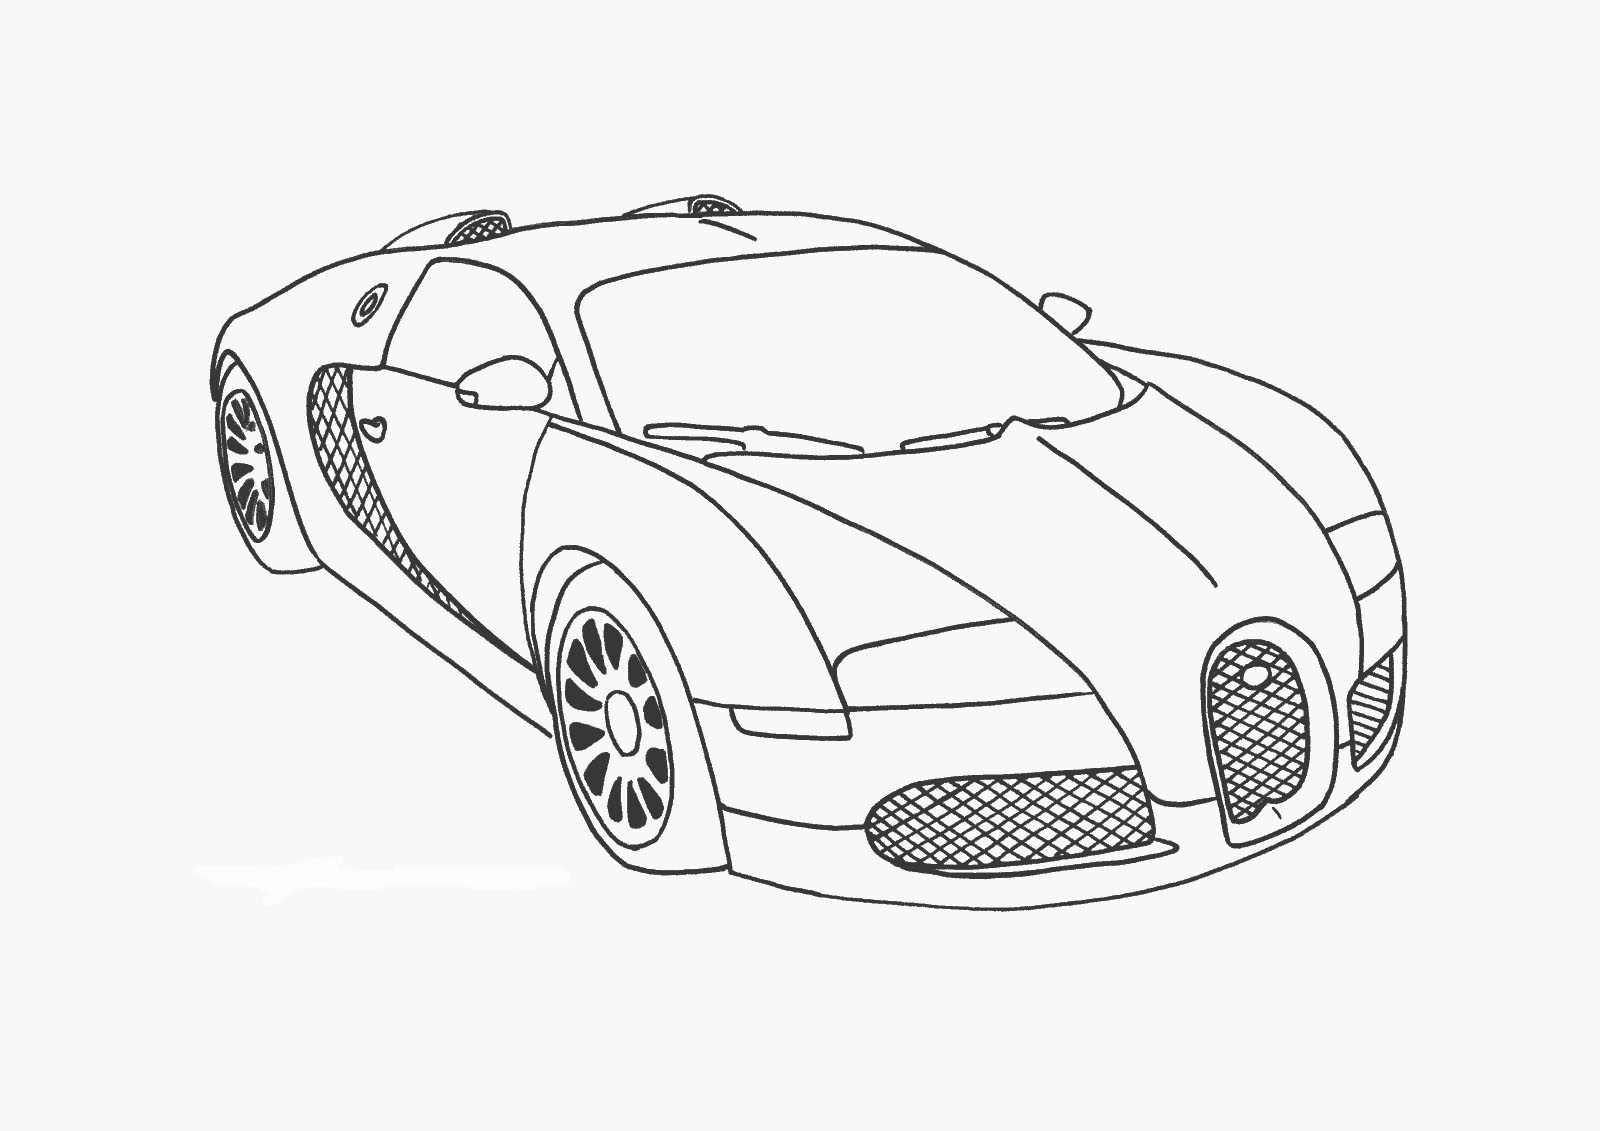 coloriage voiture de sport bugatti veyron imprimer et colorier. Black Bedroom Furniture Sets. Home Design Ideas